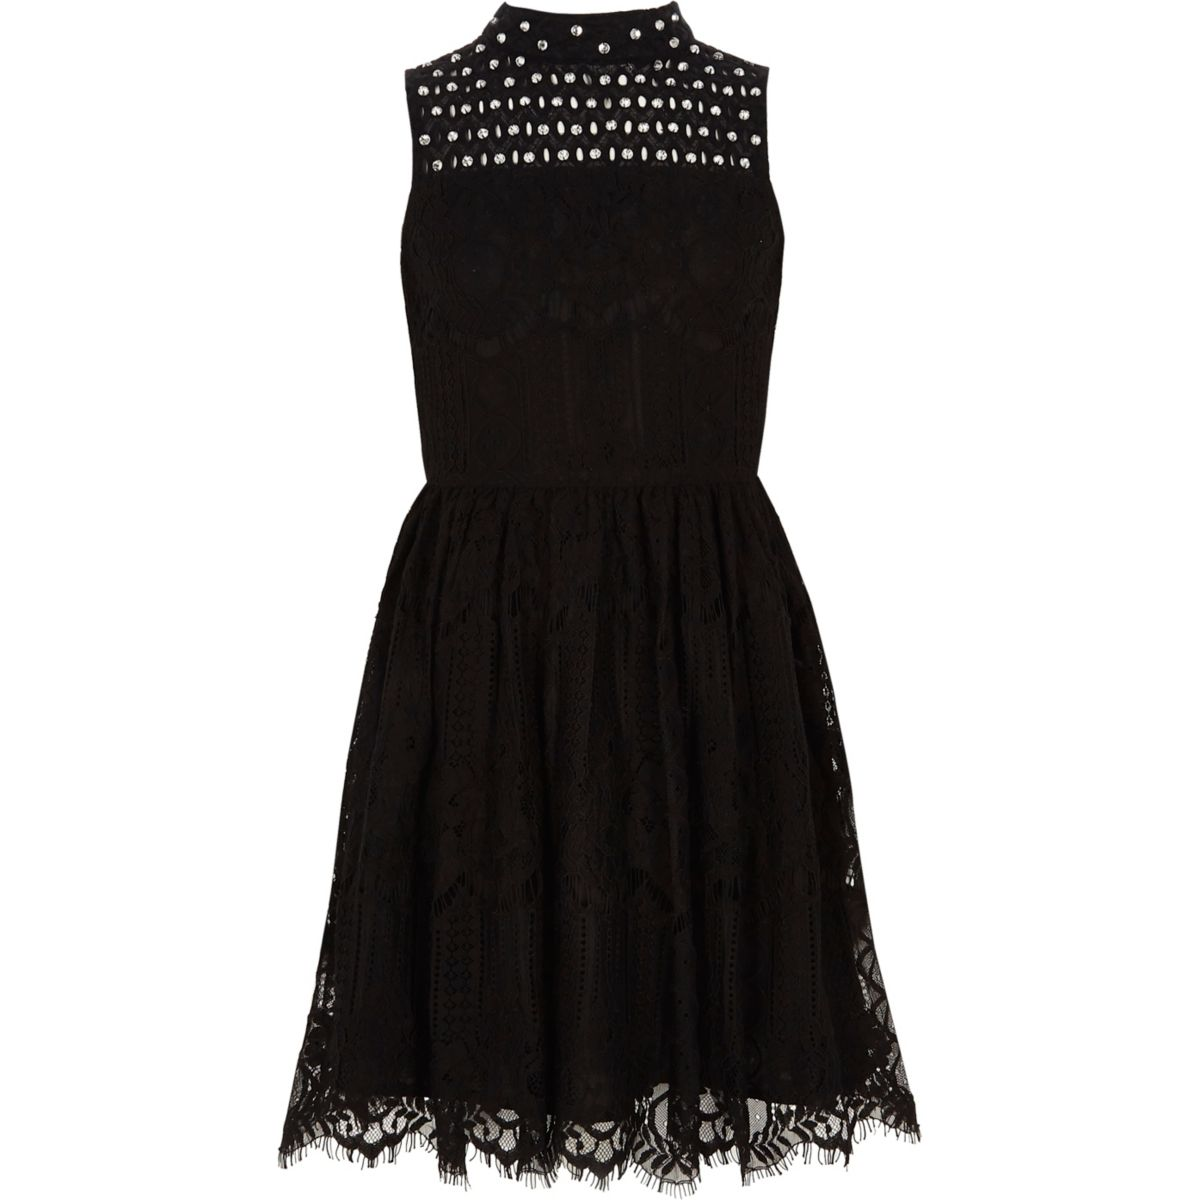 Girls black lace high neck prom dress